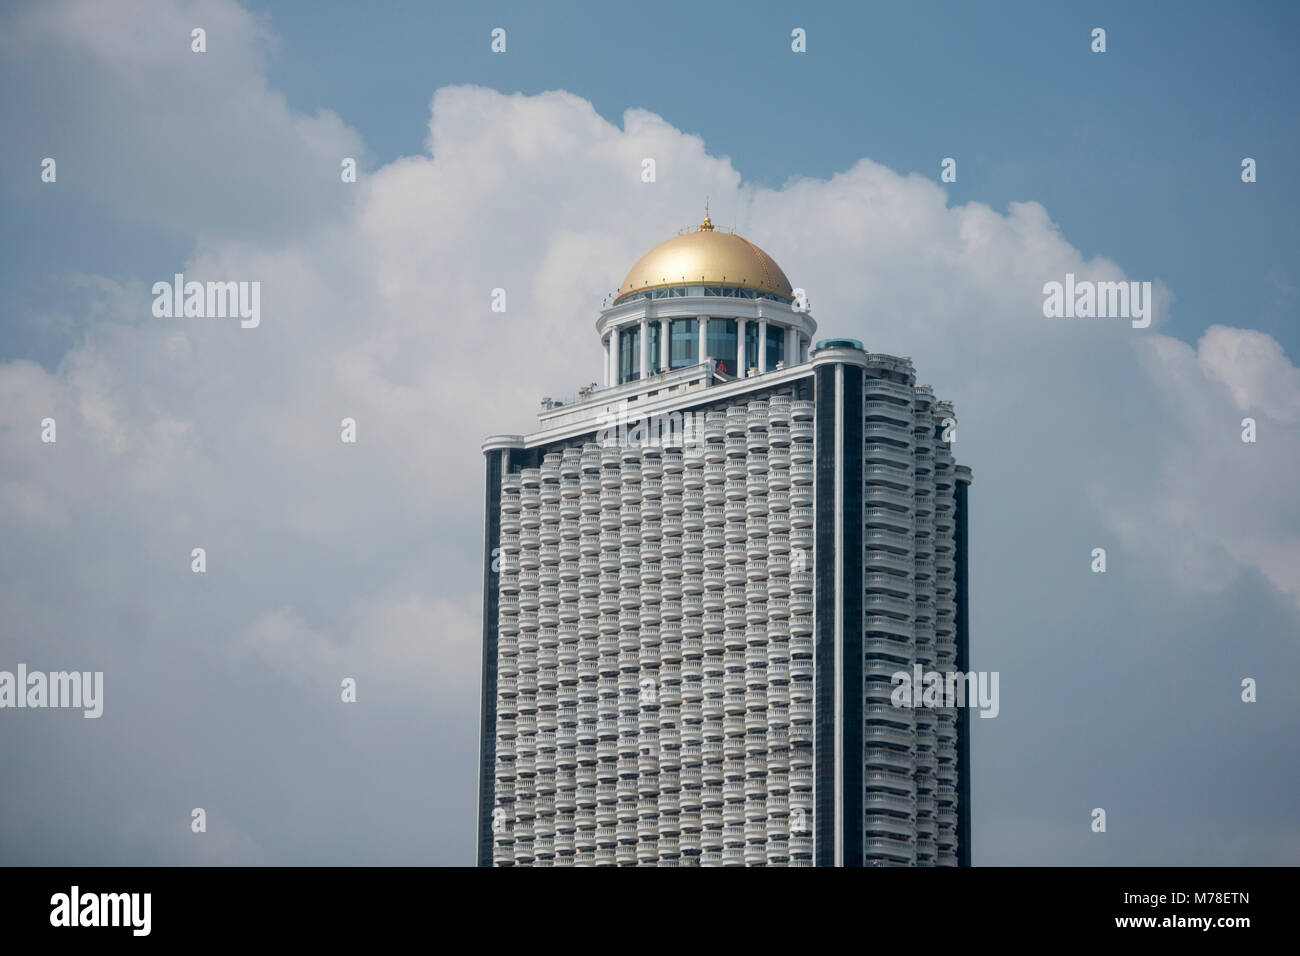 the roof top bar sky bar at the Labua Tower in the Skyline at the chao phraya river in the city of Bangkok in Thailand. - Stock Image